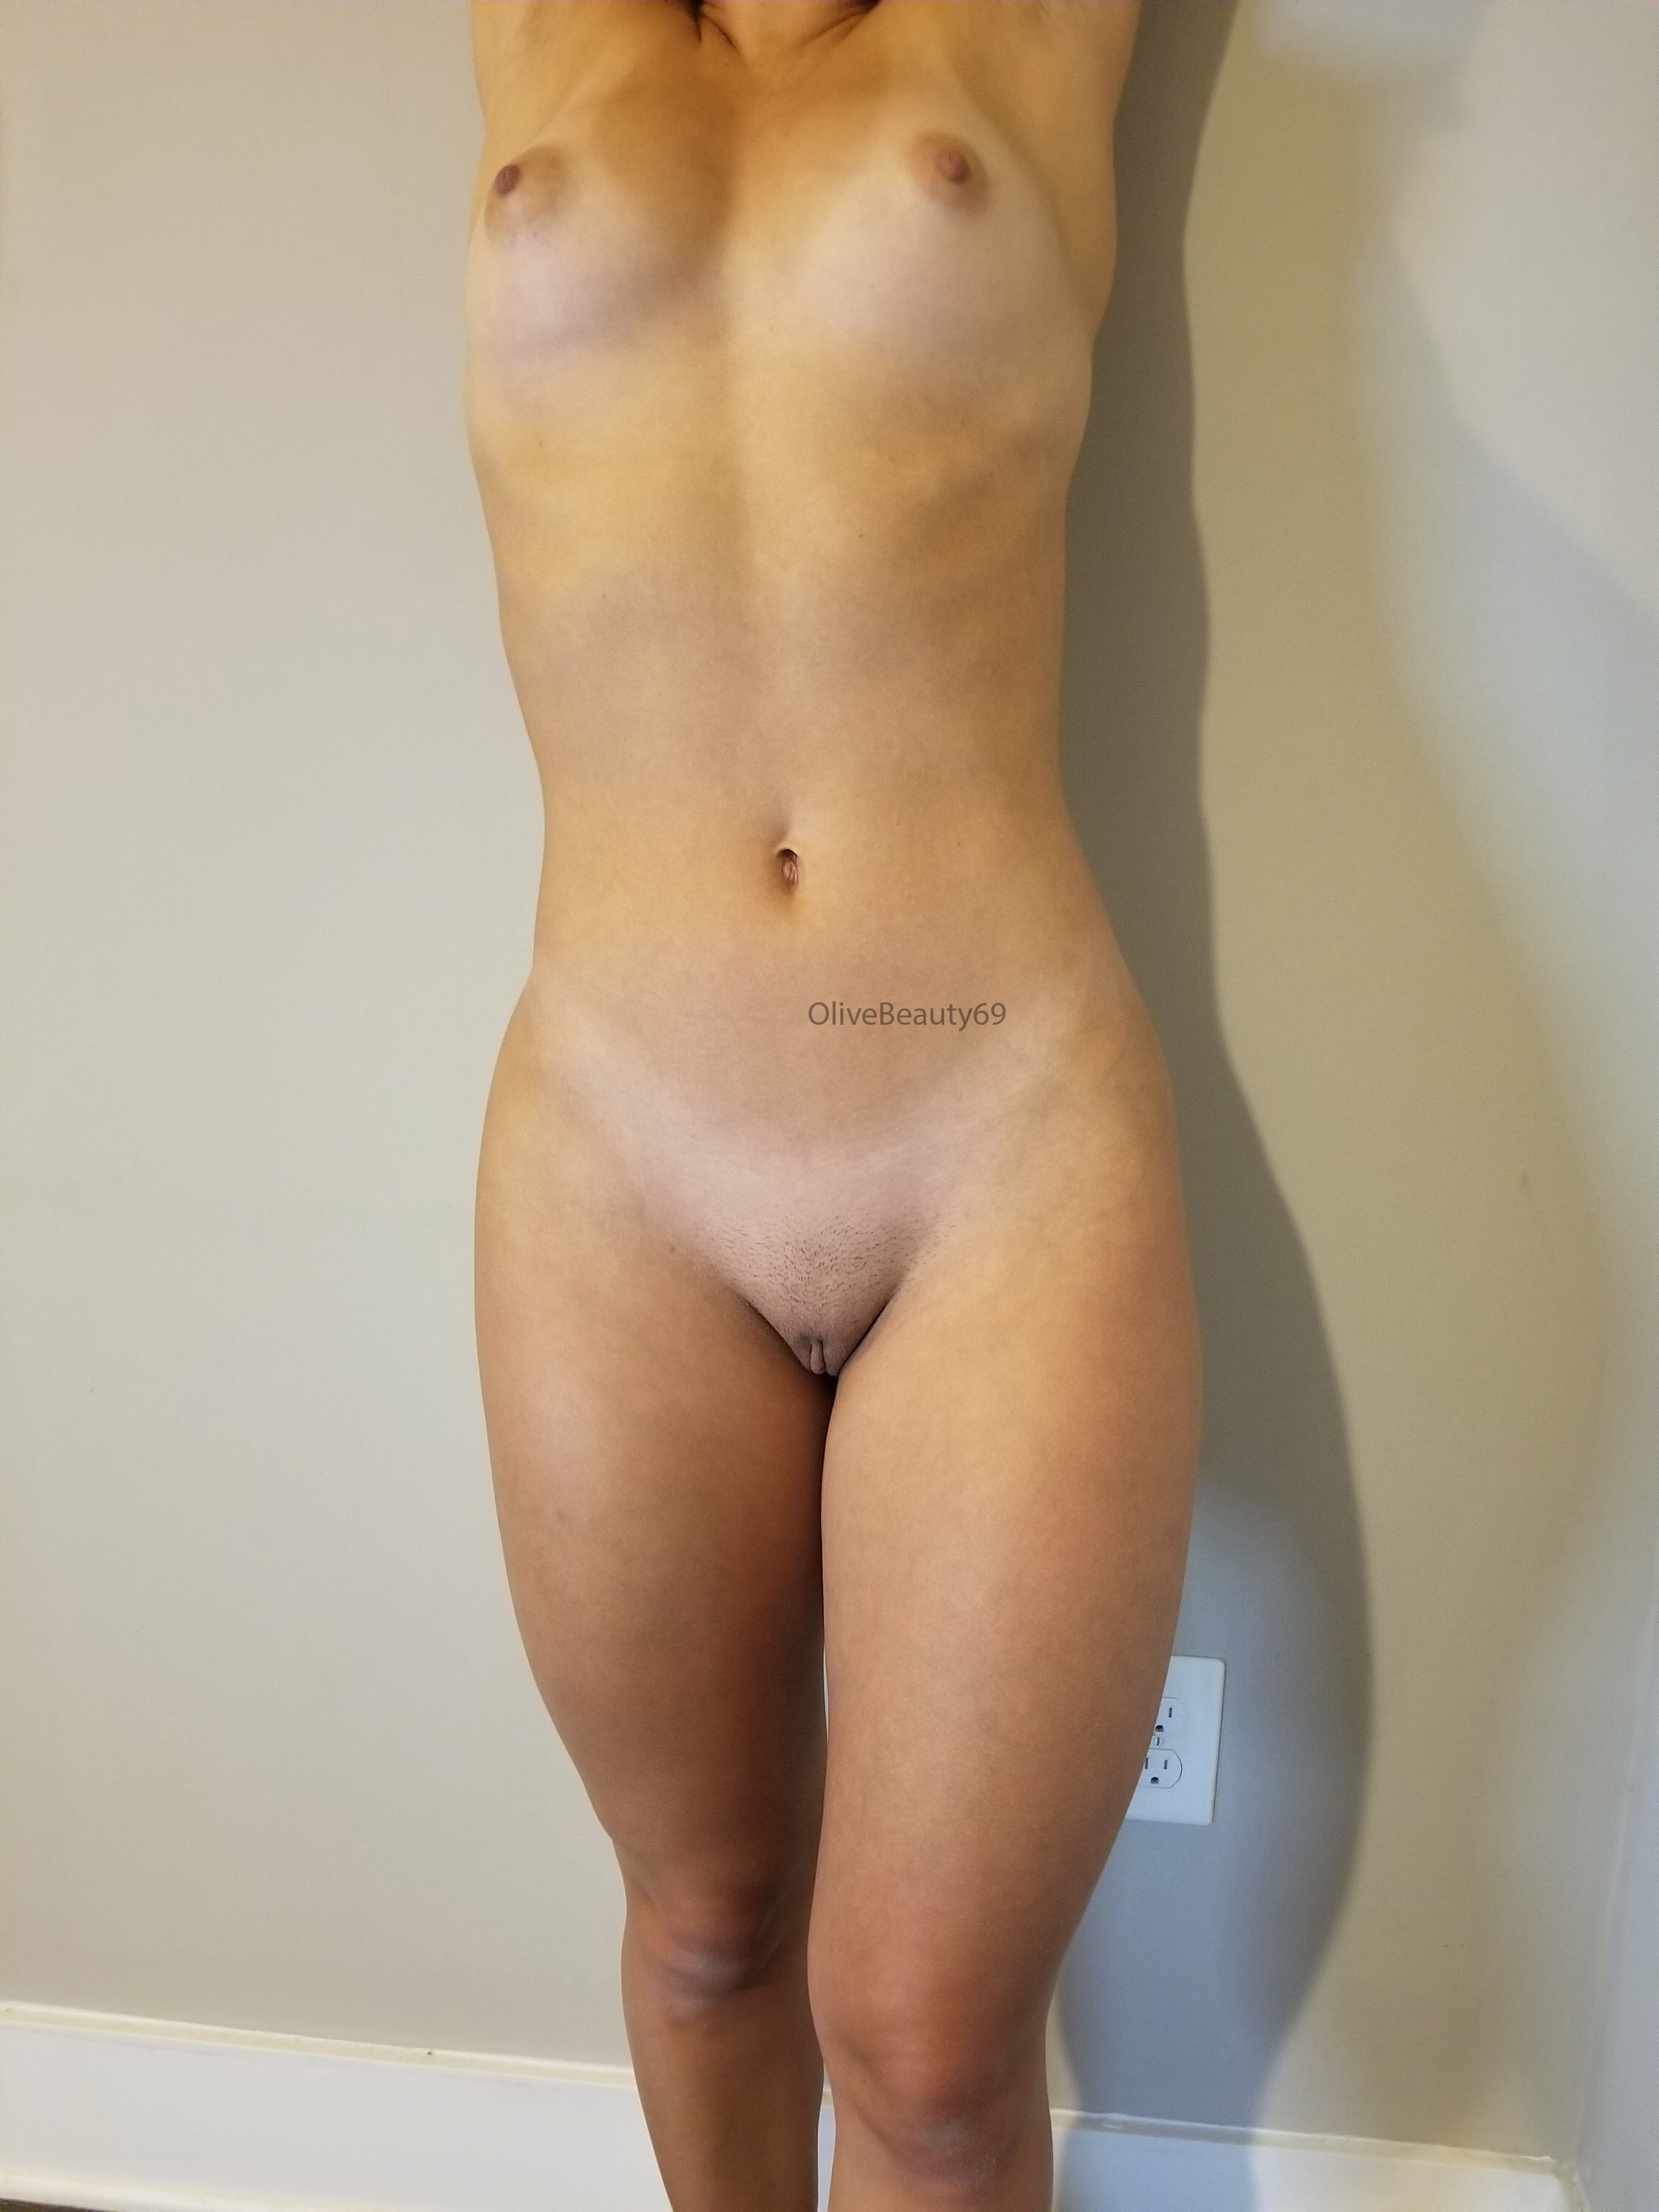 This Is The Most Pussy I've Ever Shown. Hope You Like It ?